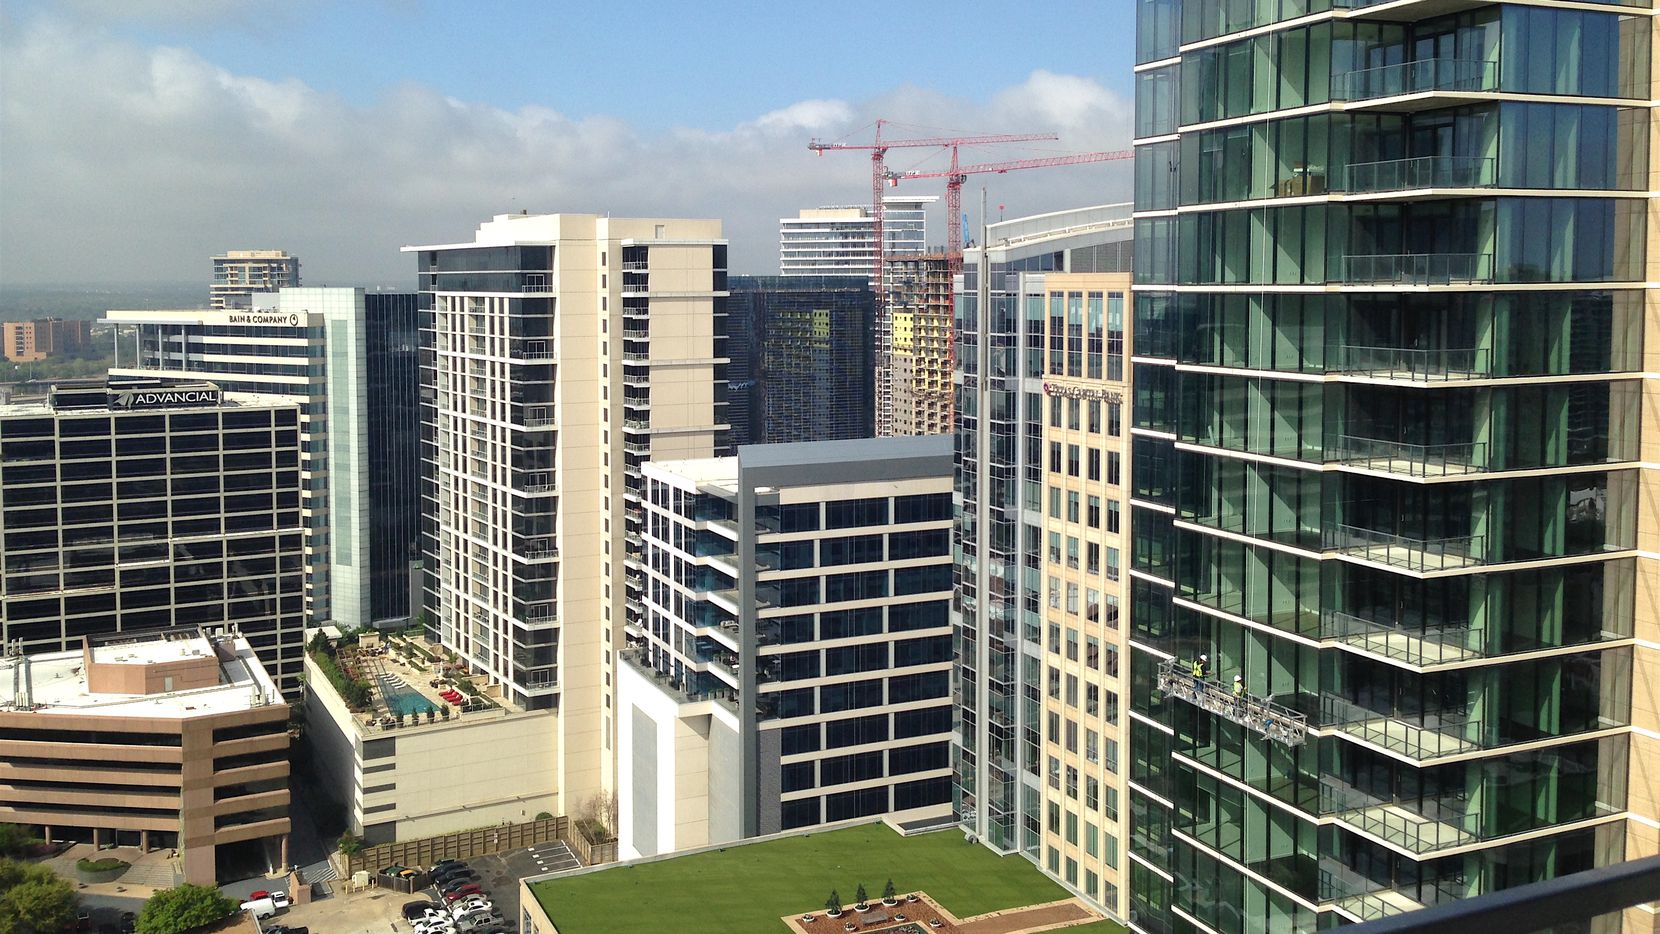 COVID-19 has cut demand for office space in Dallas and nationwide.